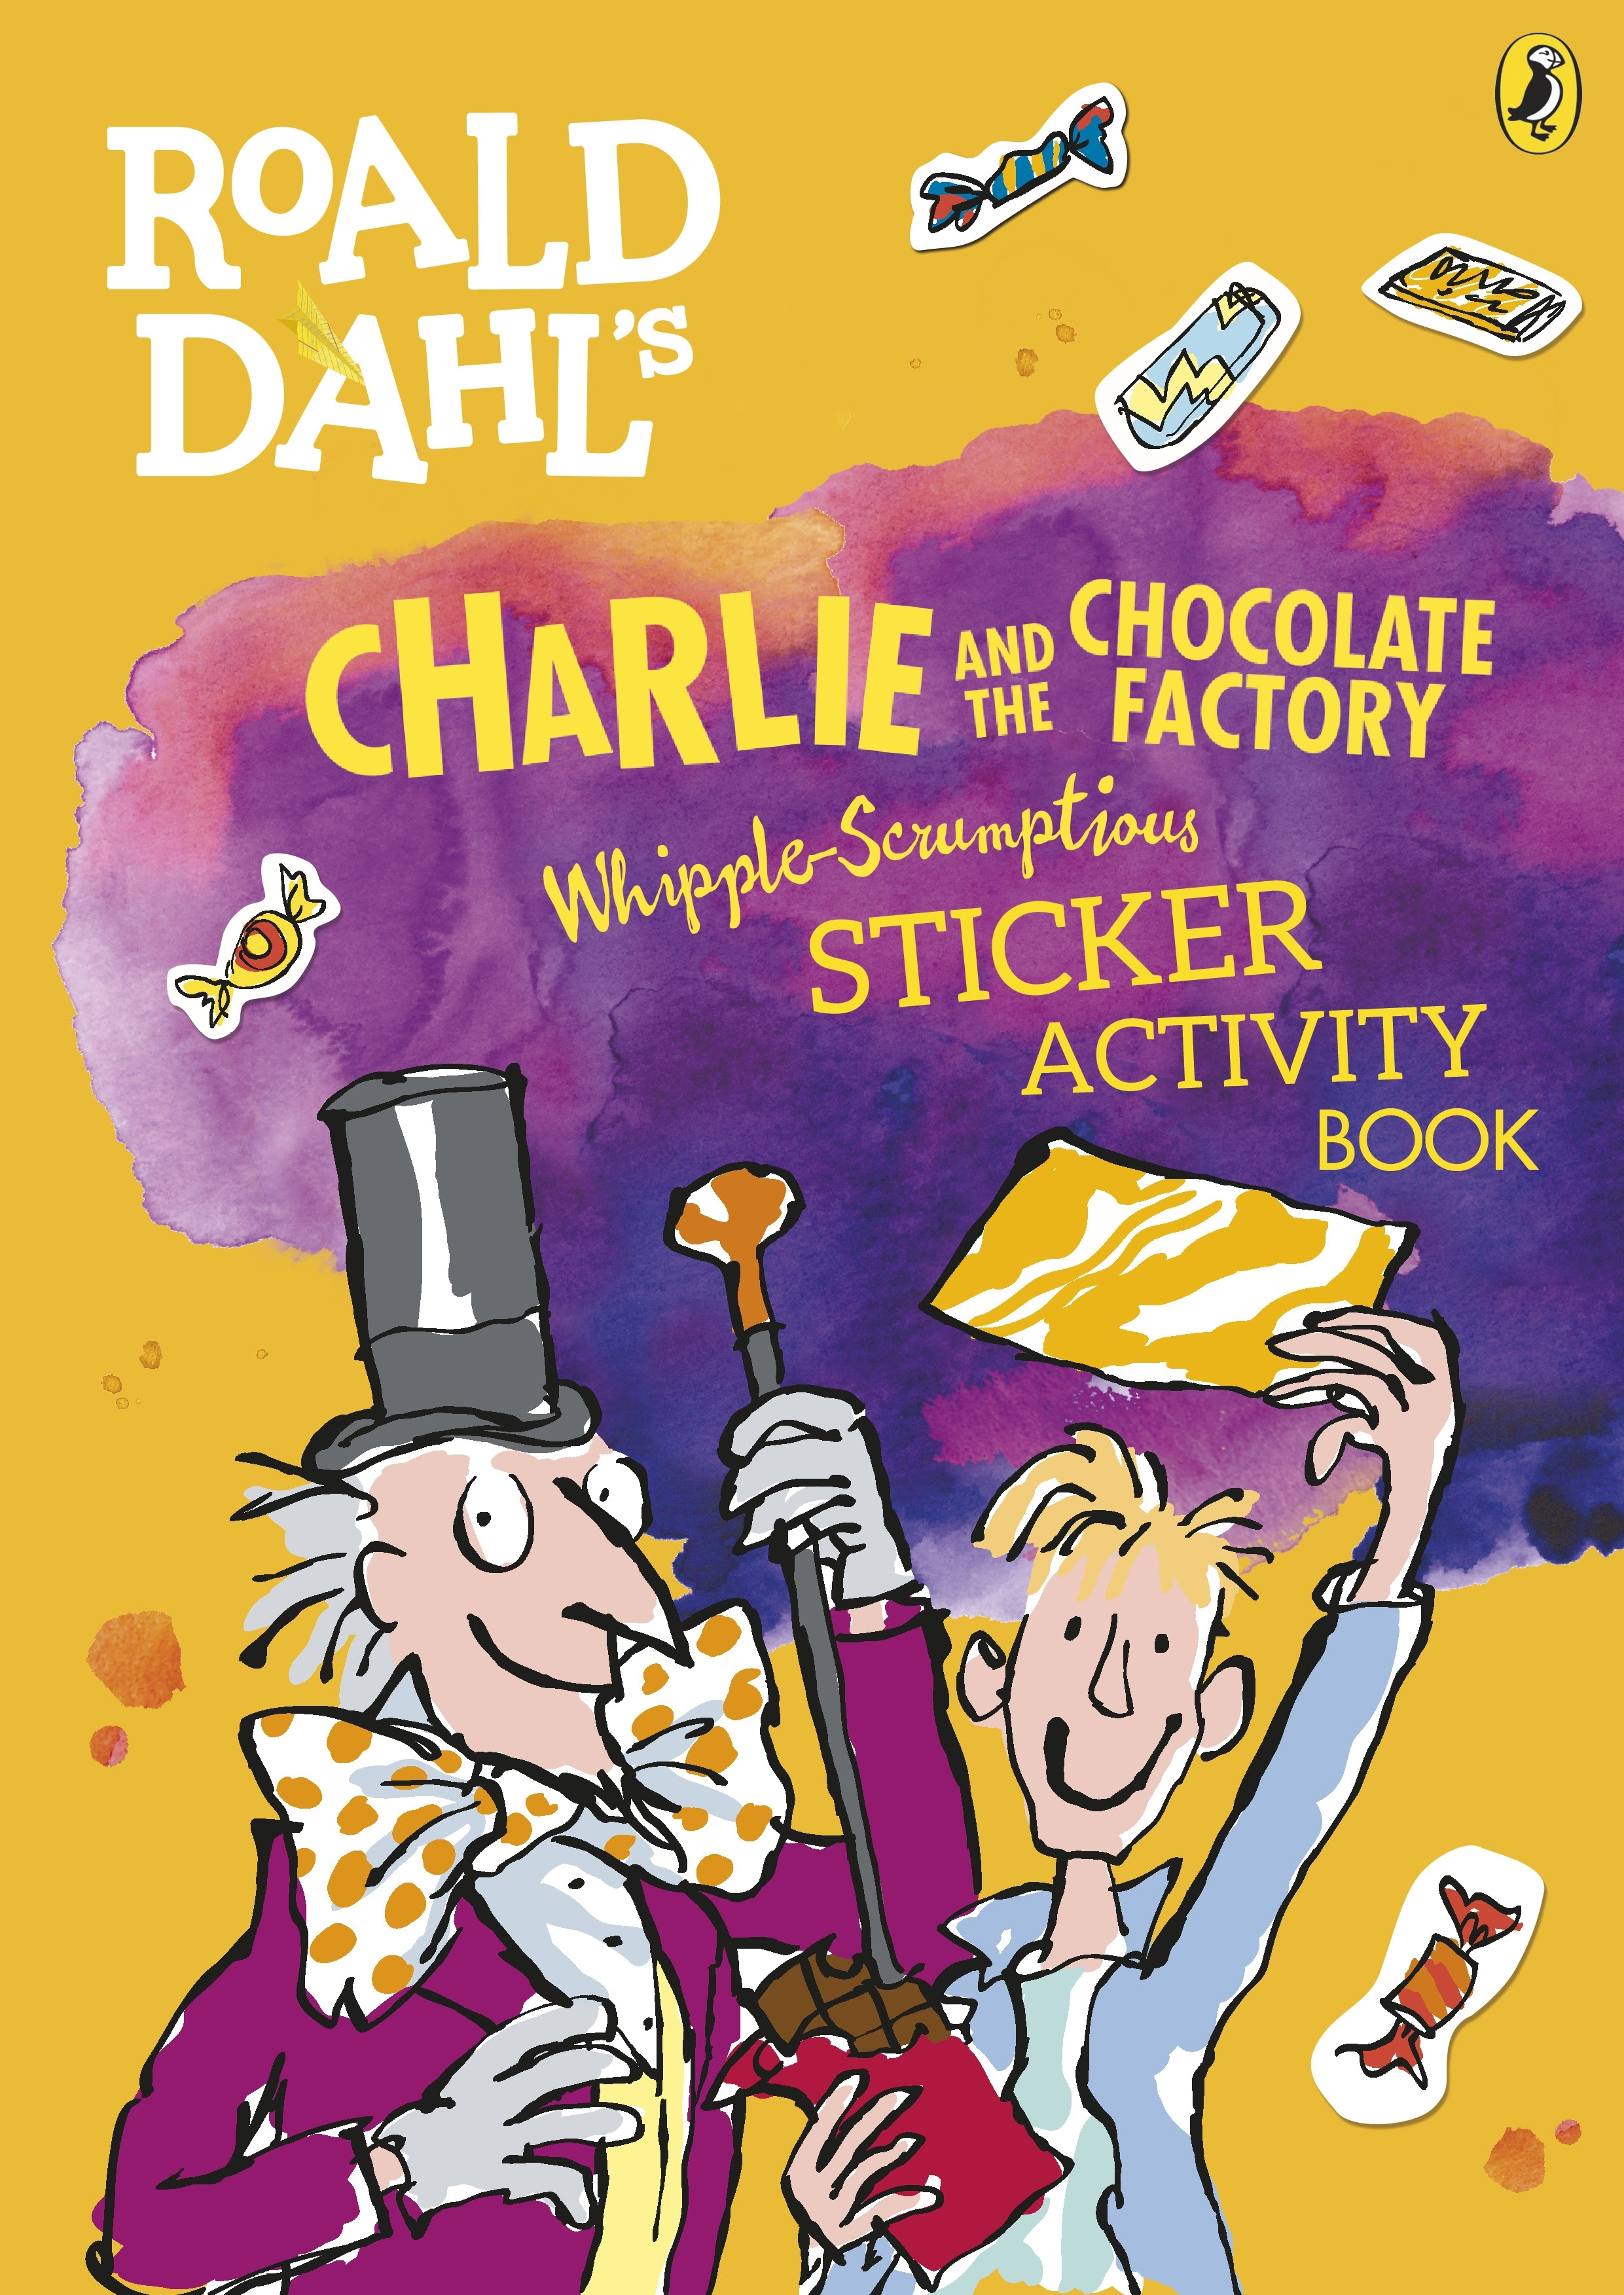 Roald Dahl Charlie And The Chocolate Factory Sticker Activity Book ...